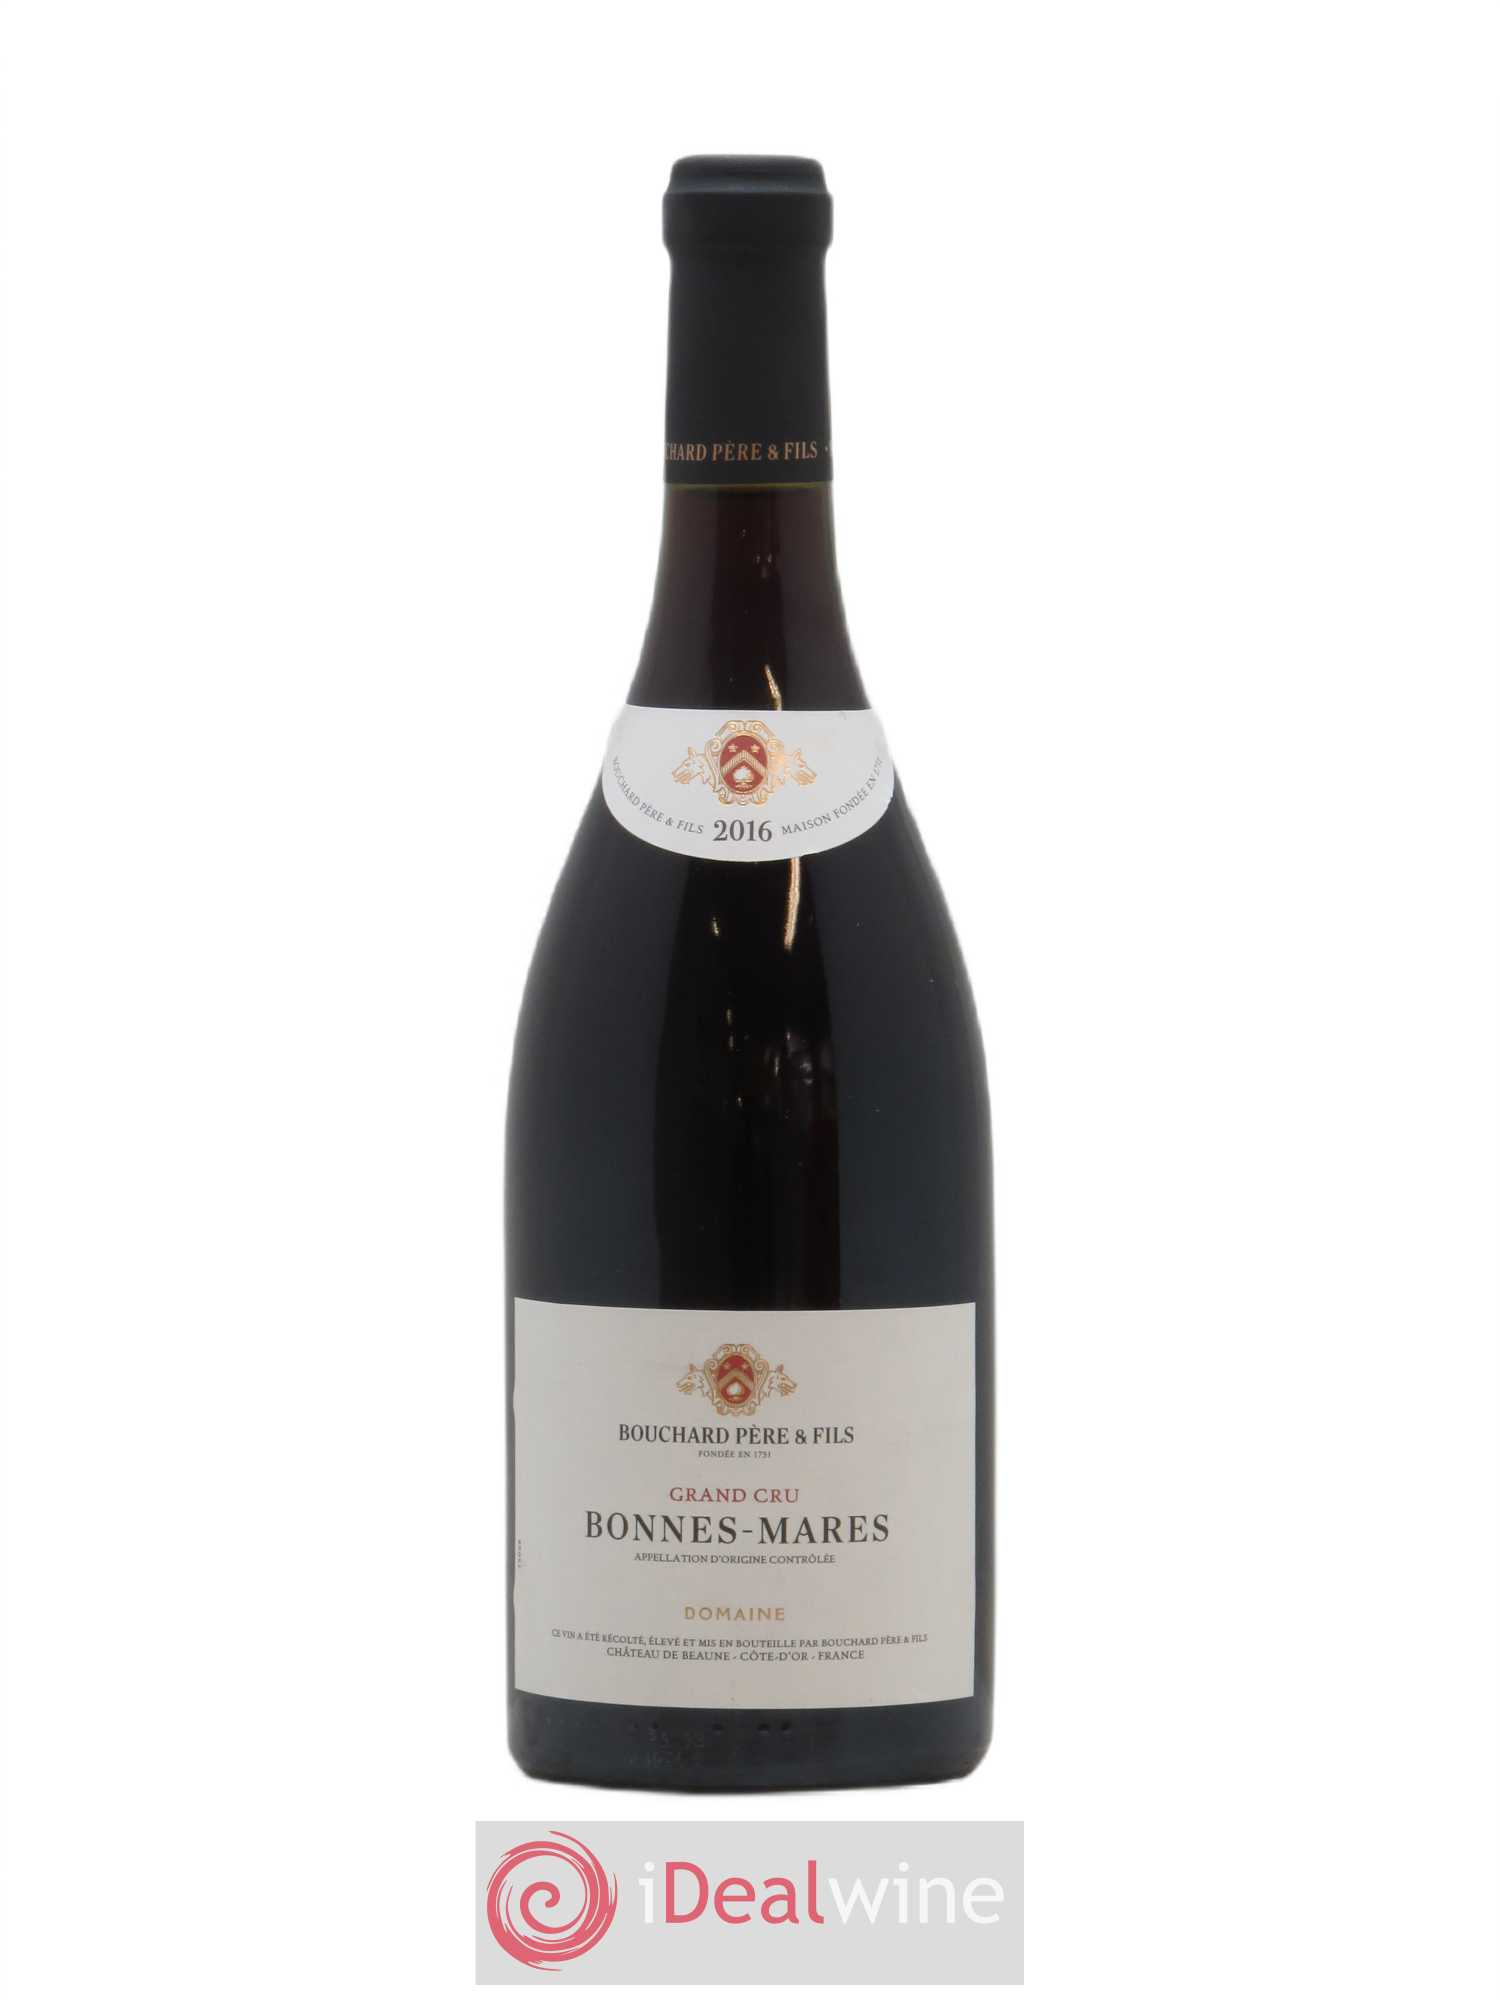 Bonnes-Mares Grand Cru Bouchard Père & Fils  2016 - Lot of 1 Bottle